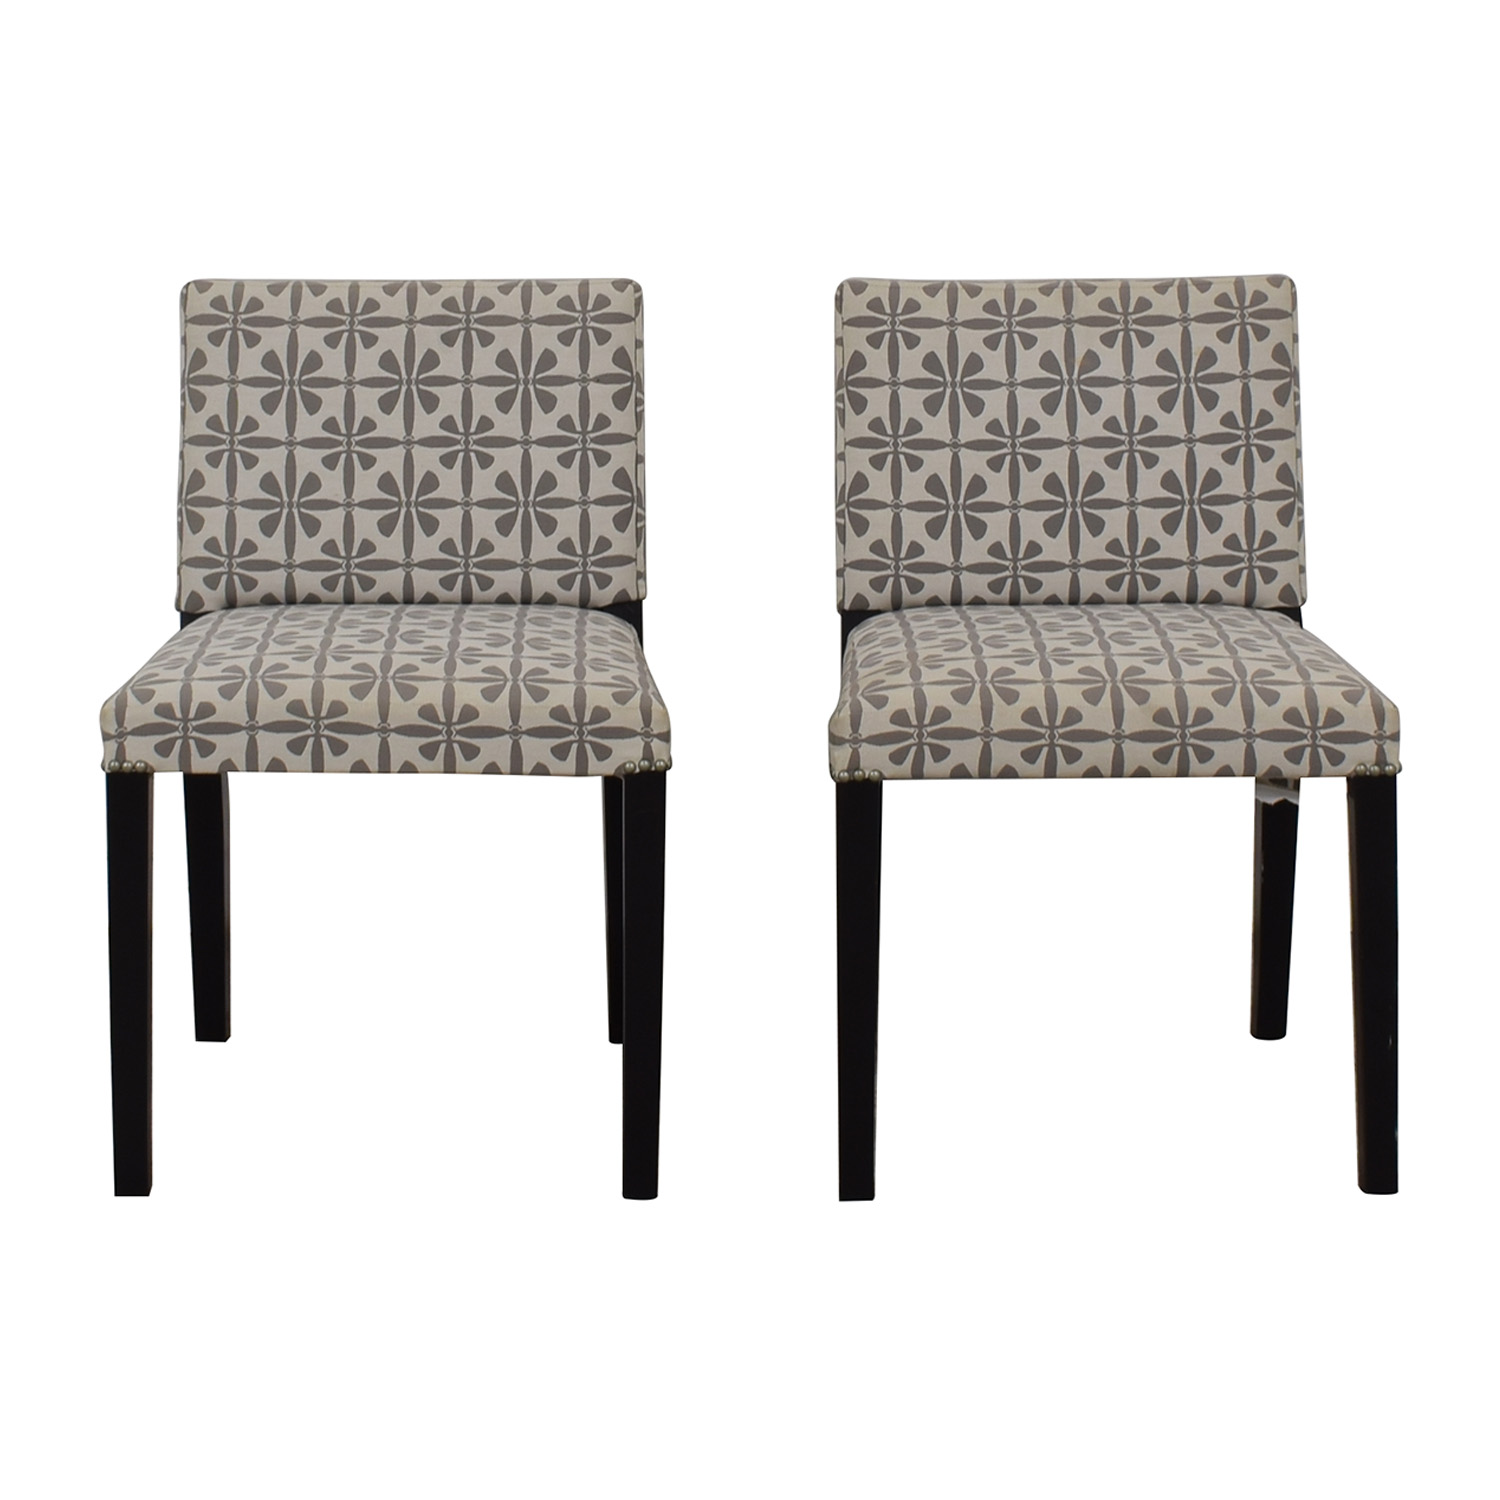 shop Macy's Patterned Fabric Dining Chairs Macy's Dining Chairs